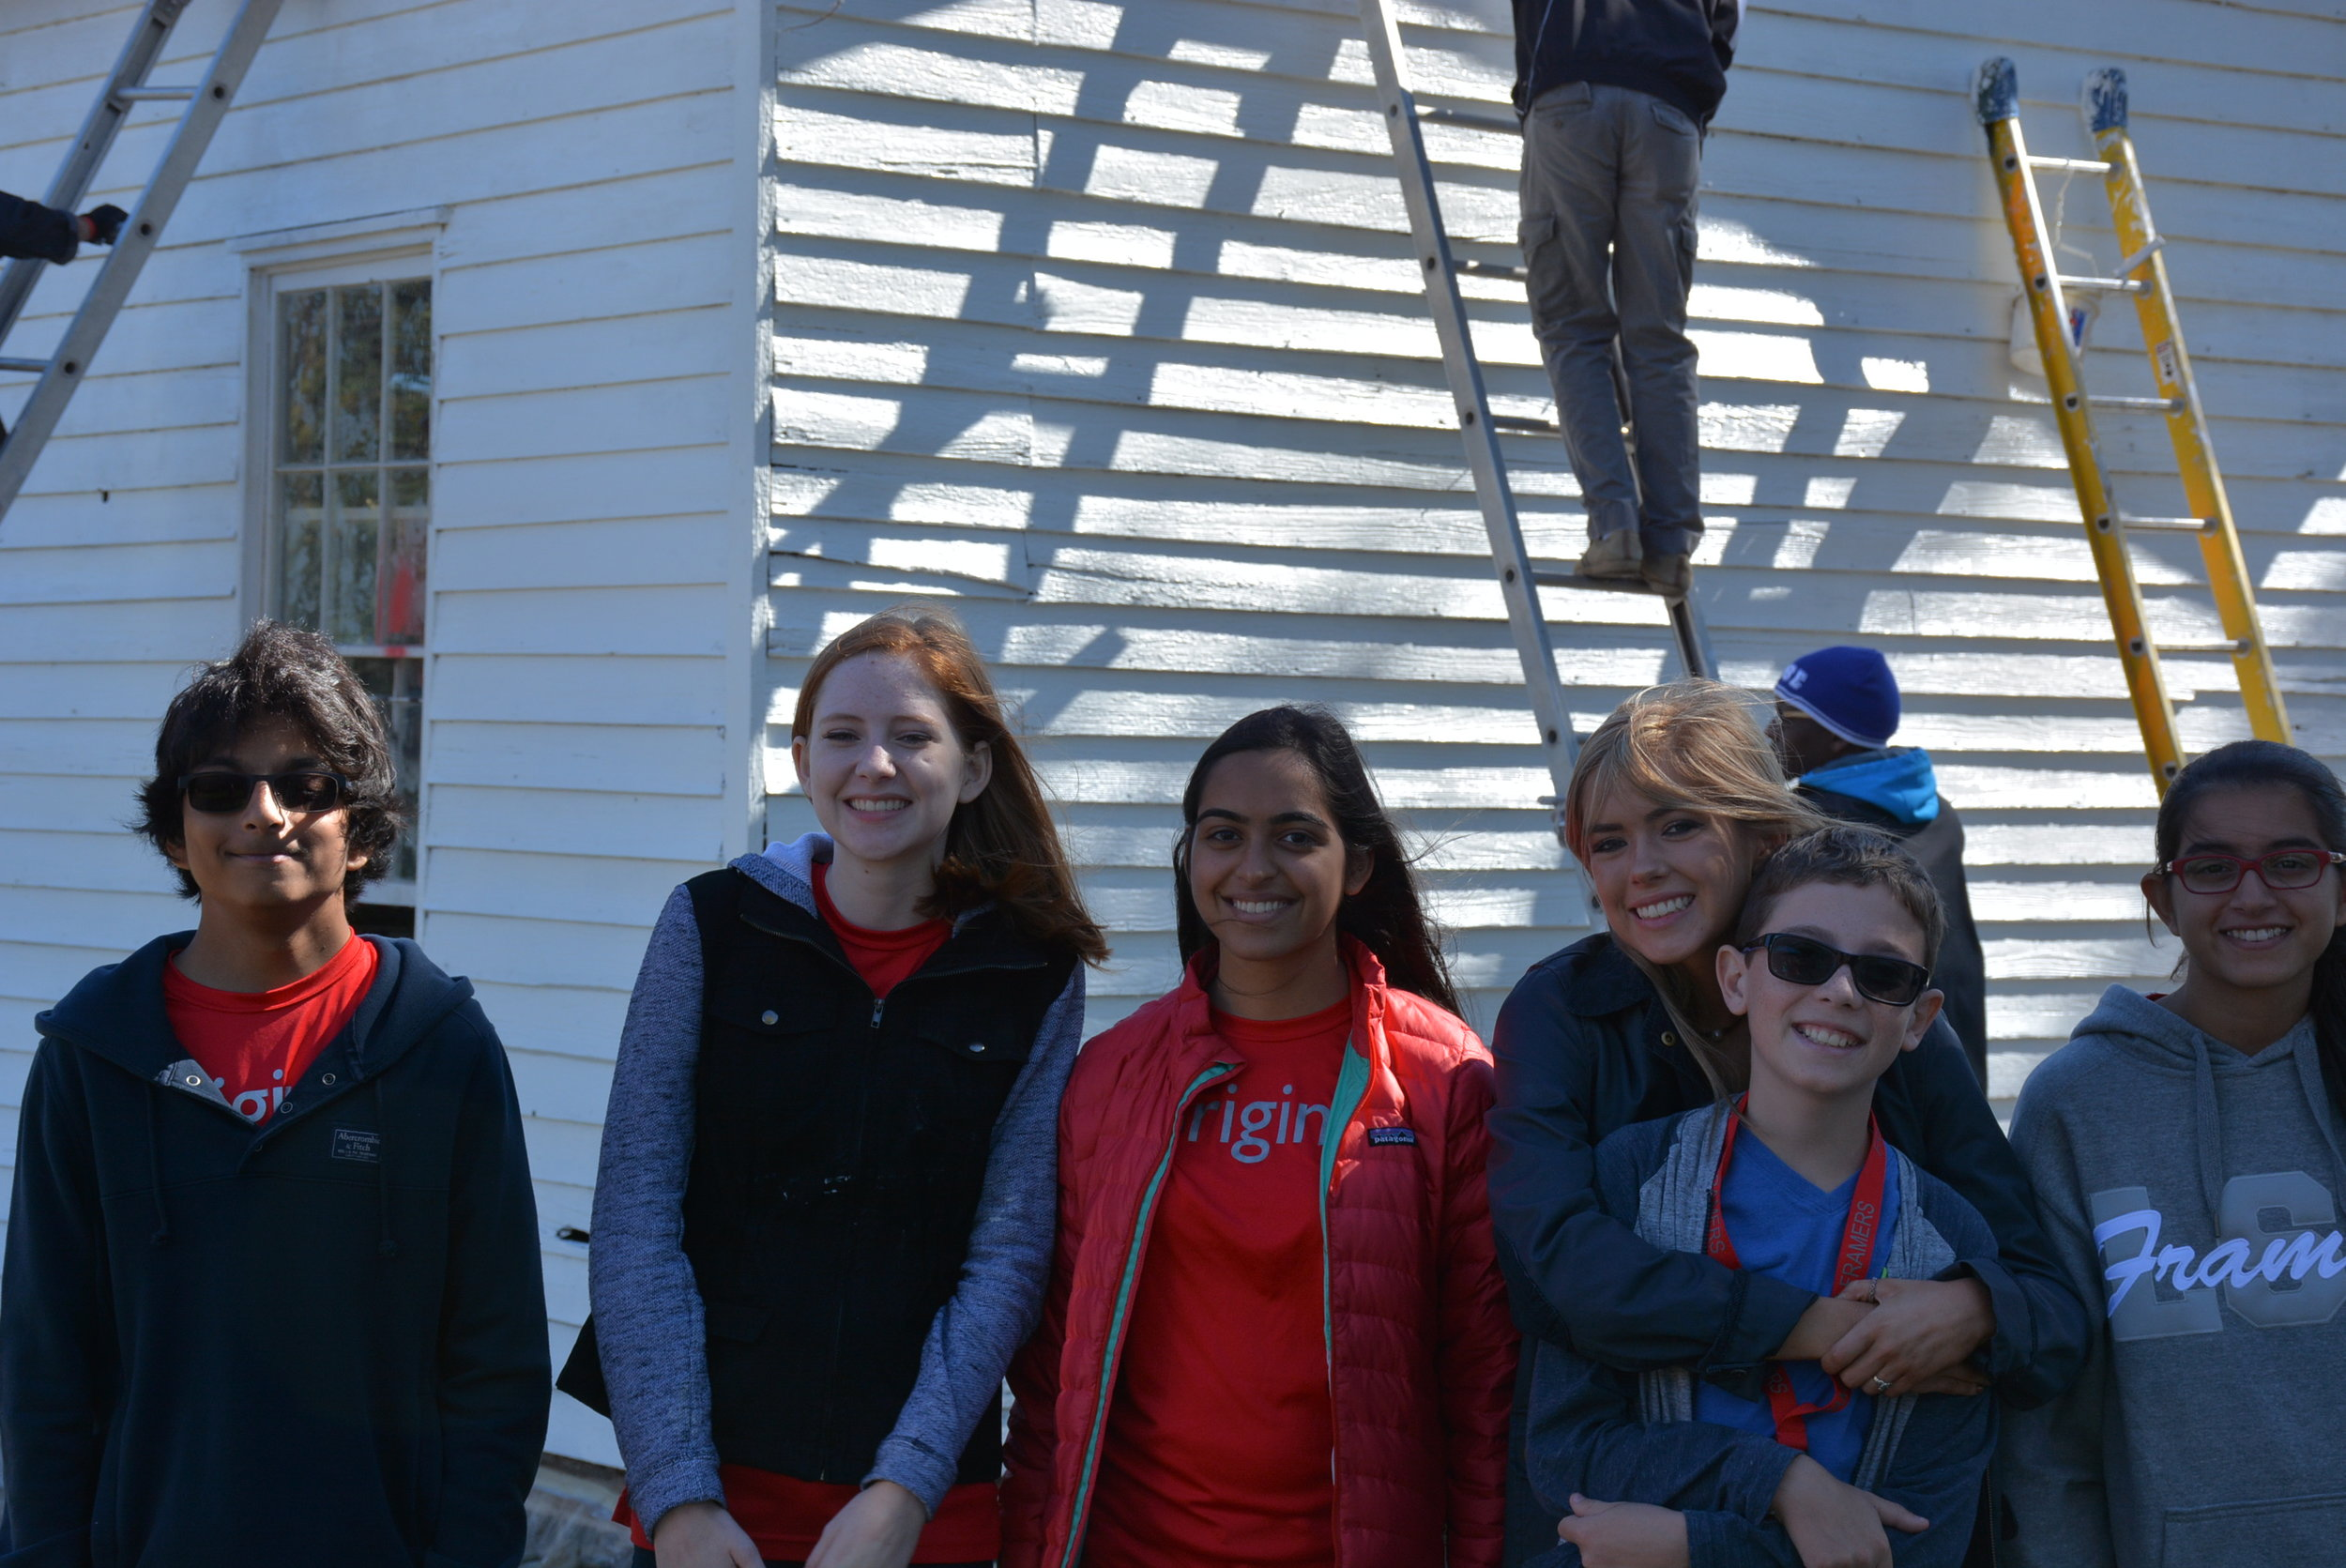 Members of the Ashburn Colored School rehabilitation team celebrate after the removal of the graffiti (left to right: Kamran, Katie, Shailee, Gwyneth, Taz, and Ella).